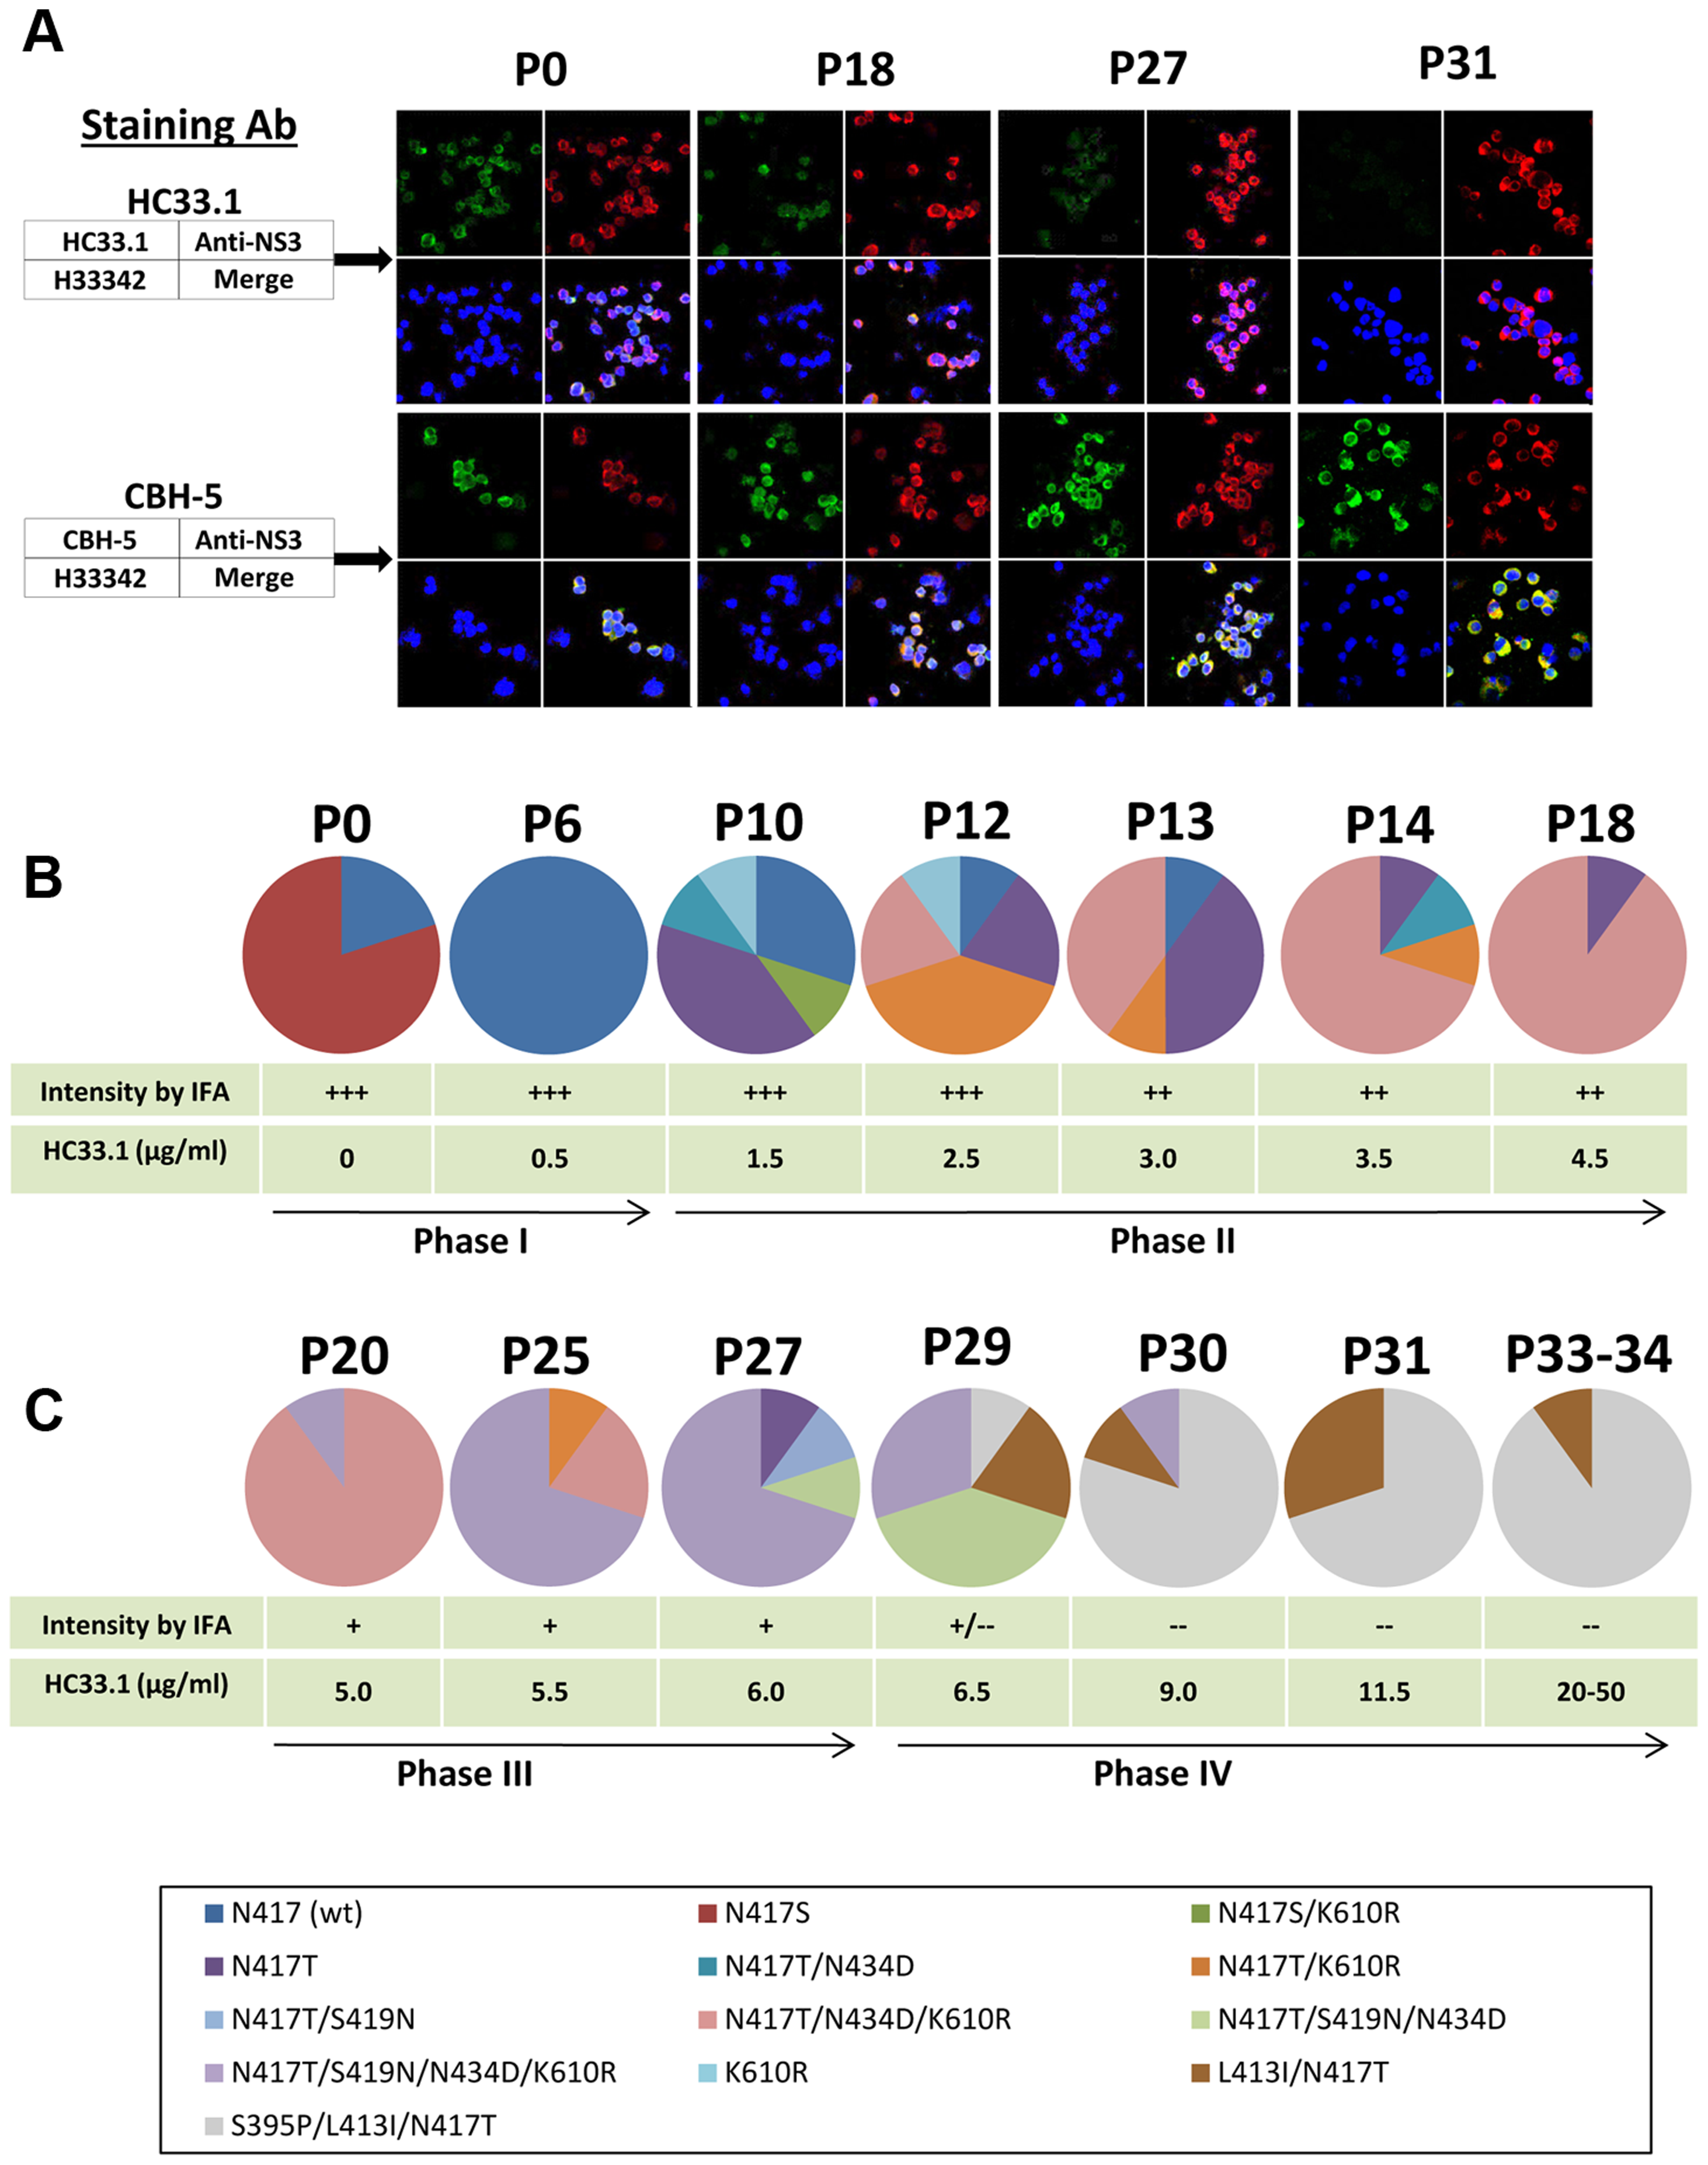 Viral evolution in the presence of increasing HMAb HC33.1 concentrations.